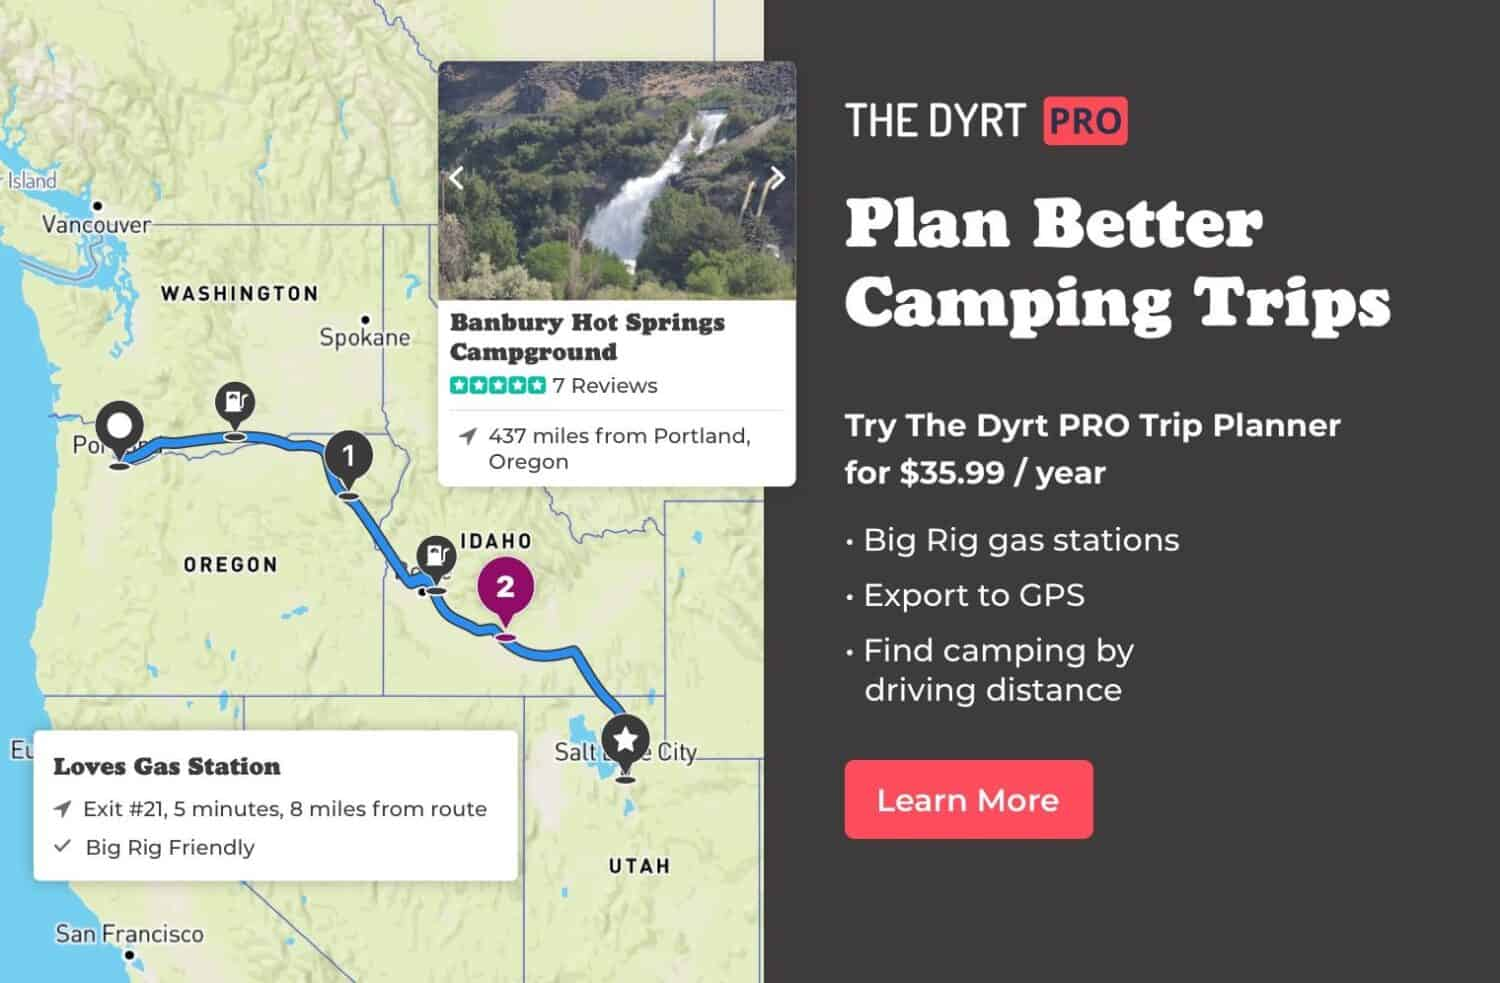 The Dyrt Road Trip Planner